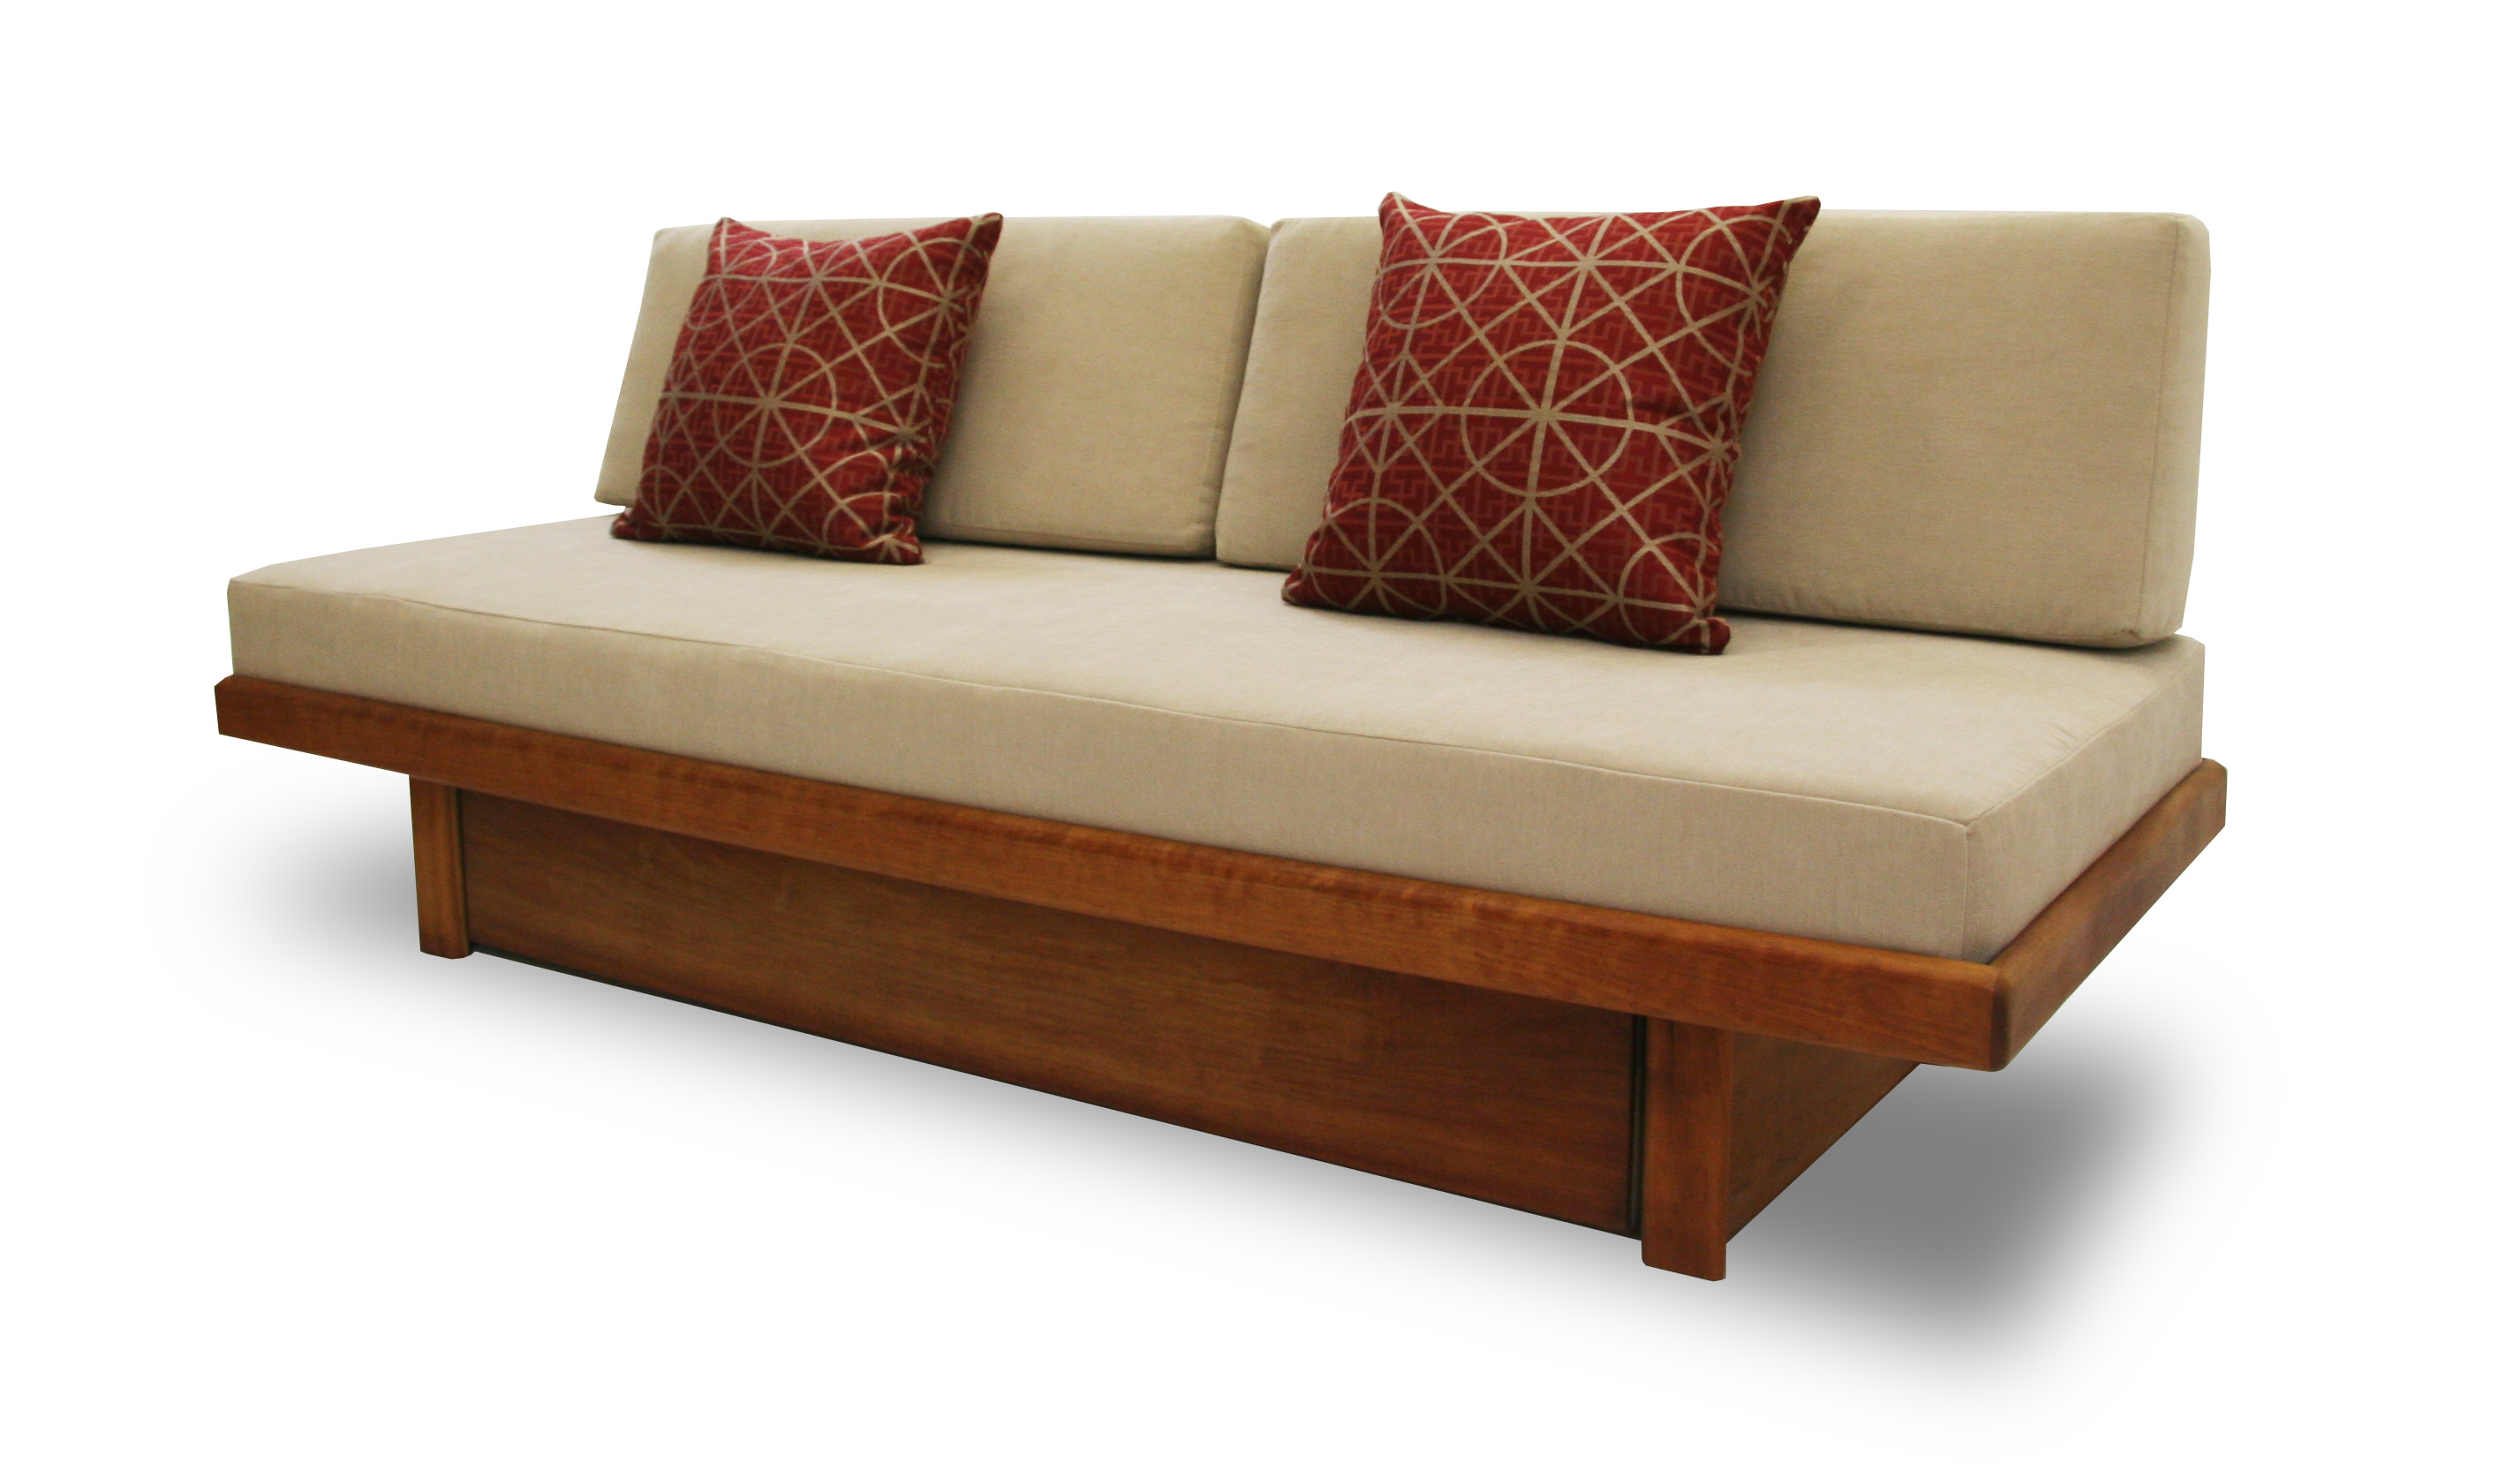 Mondrian storage daybed couch Daybeds with storage